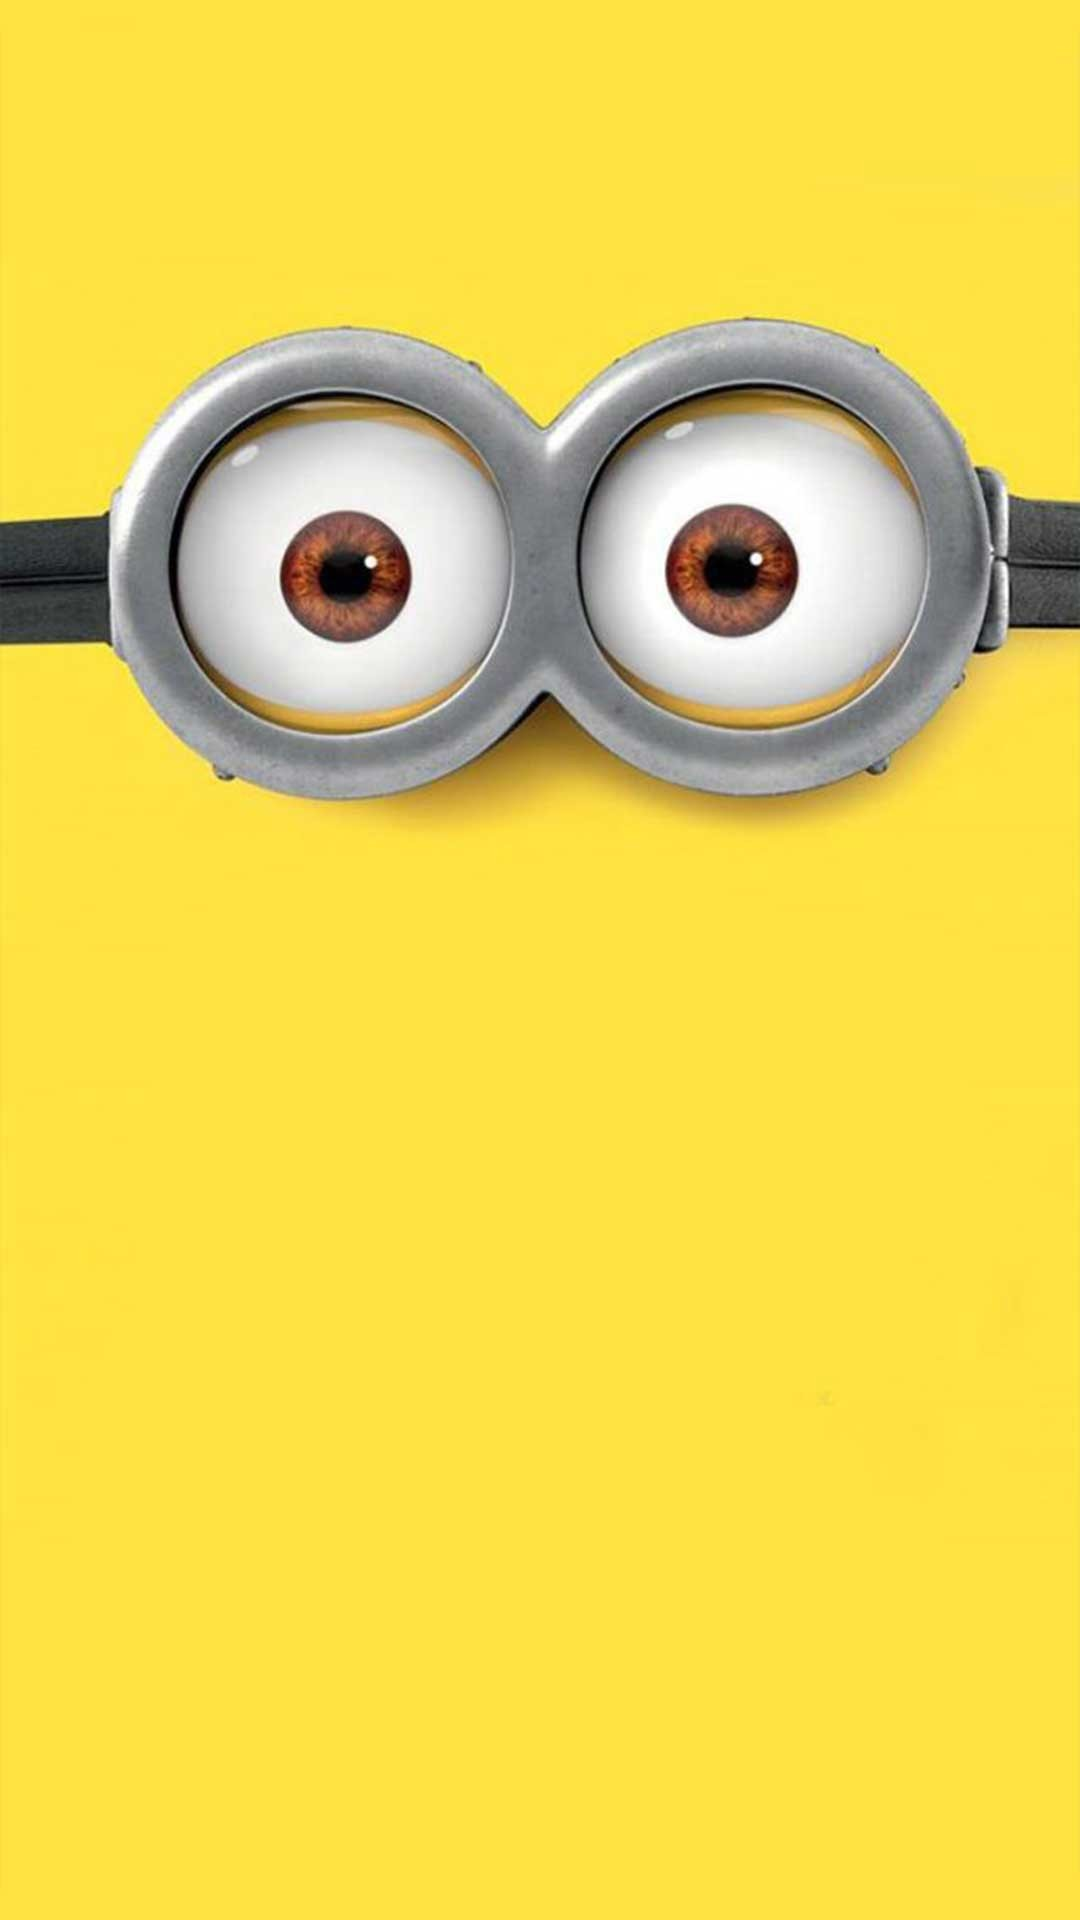 3d Minion Eye Wallpaper HD. funny iphone wallpapers